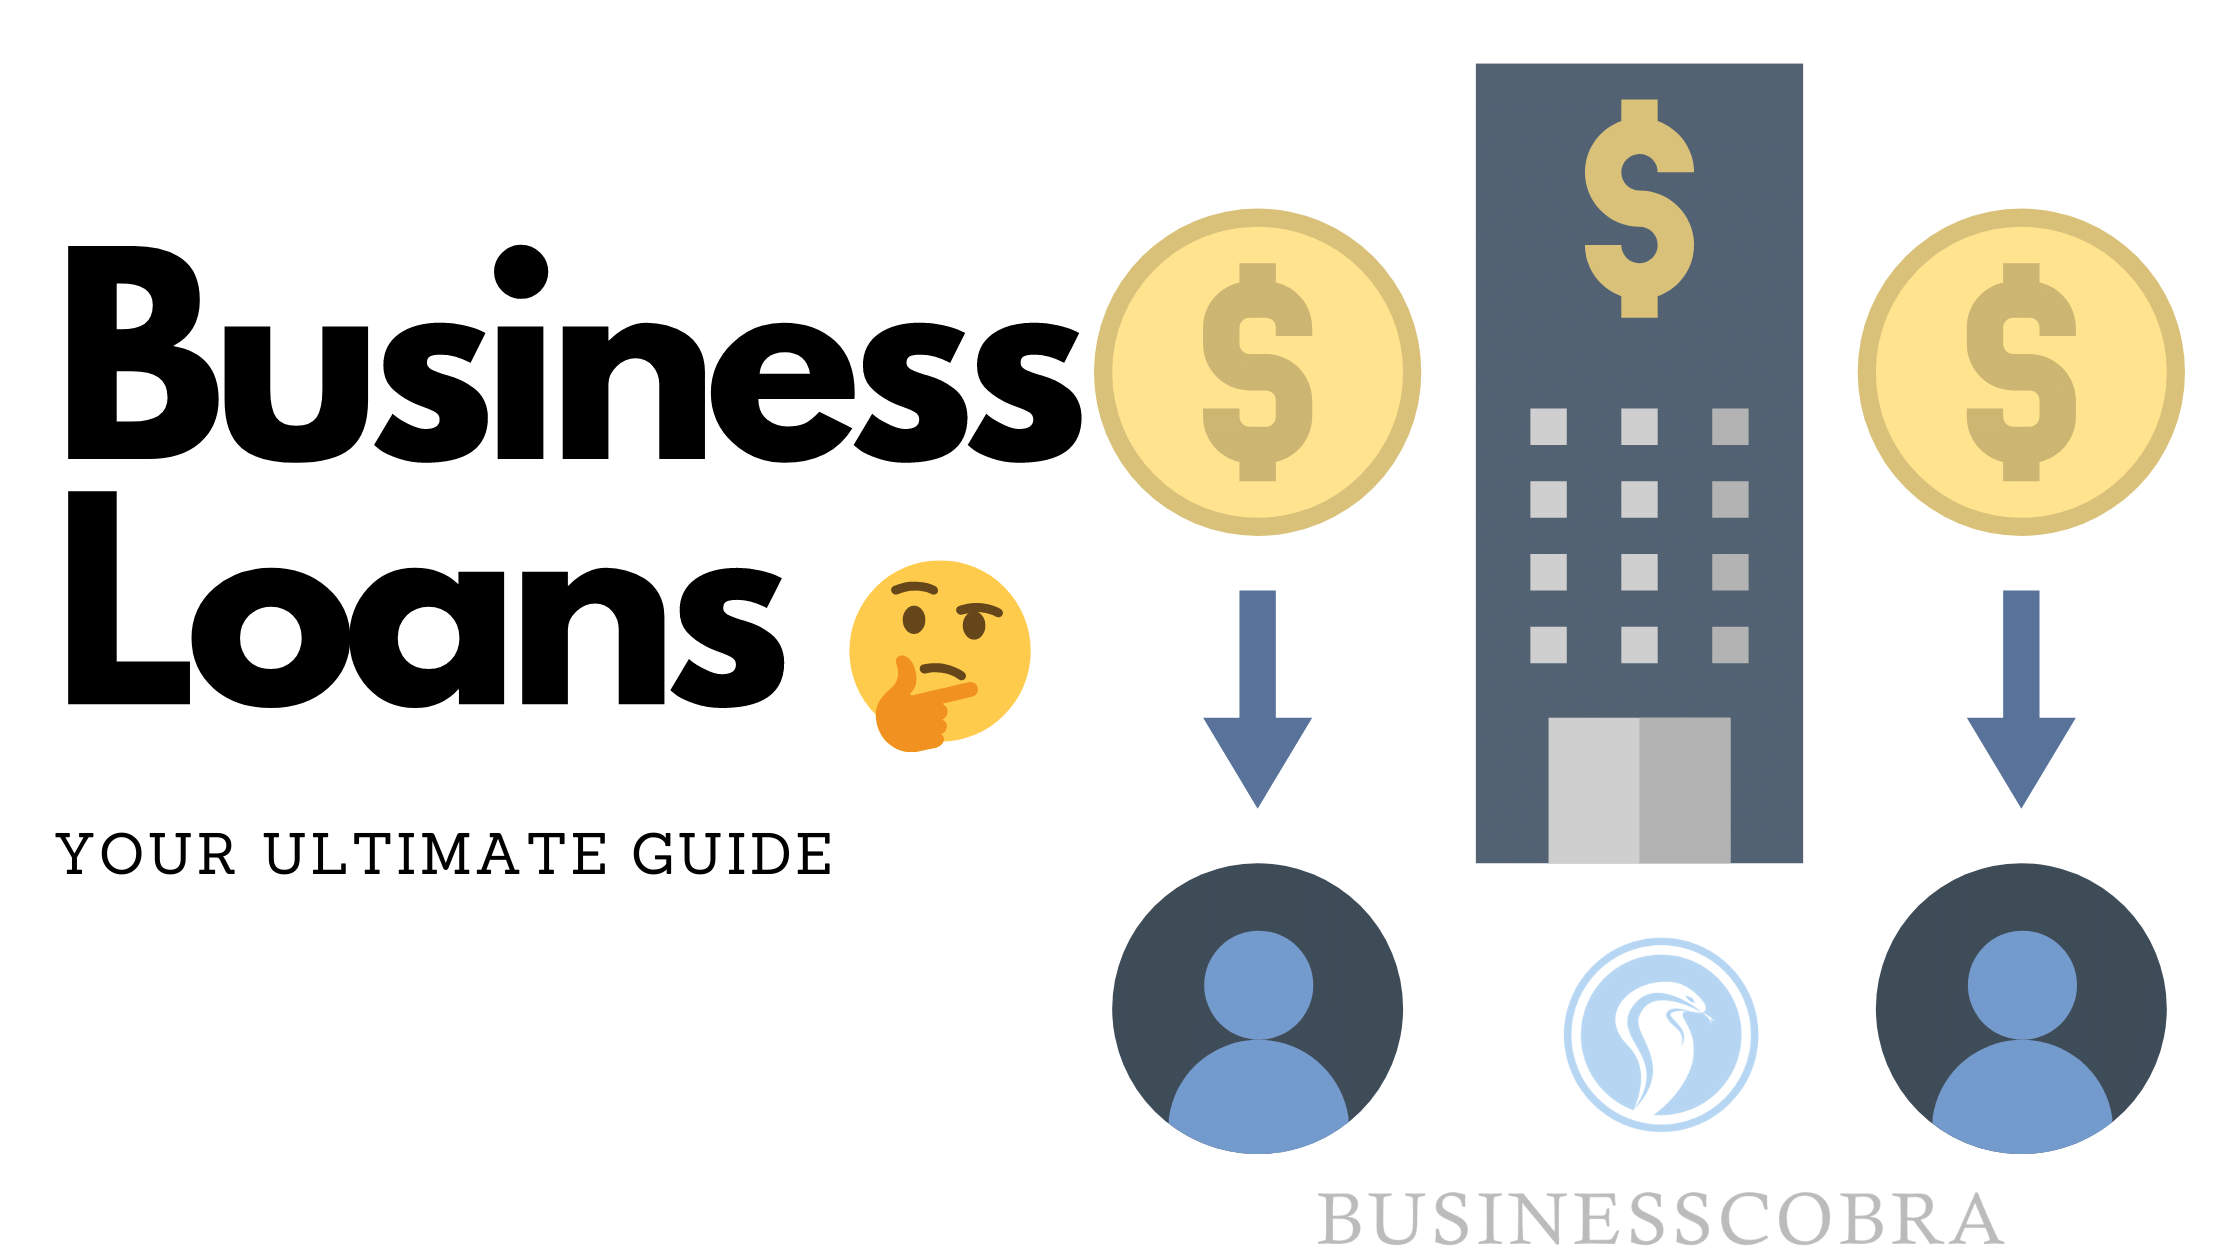 Your guide to small business loans